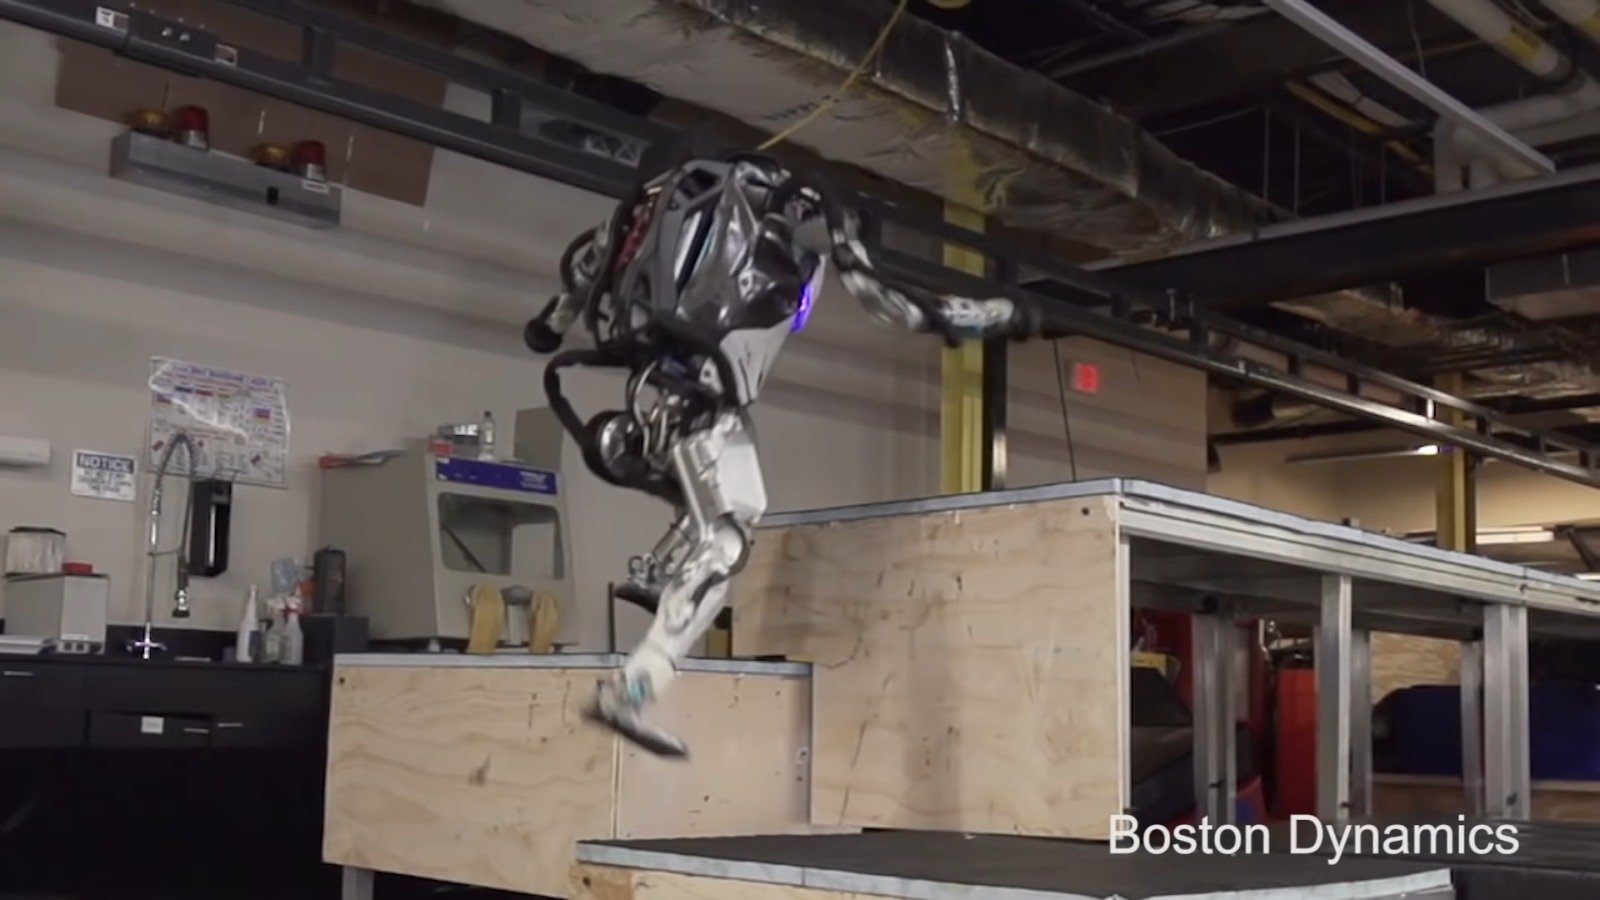 #video | the Company Boston Dynamics have trained your robot